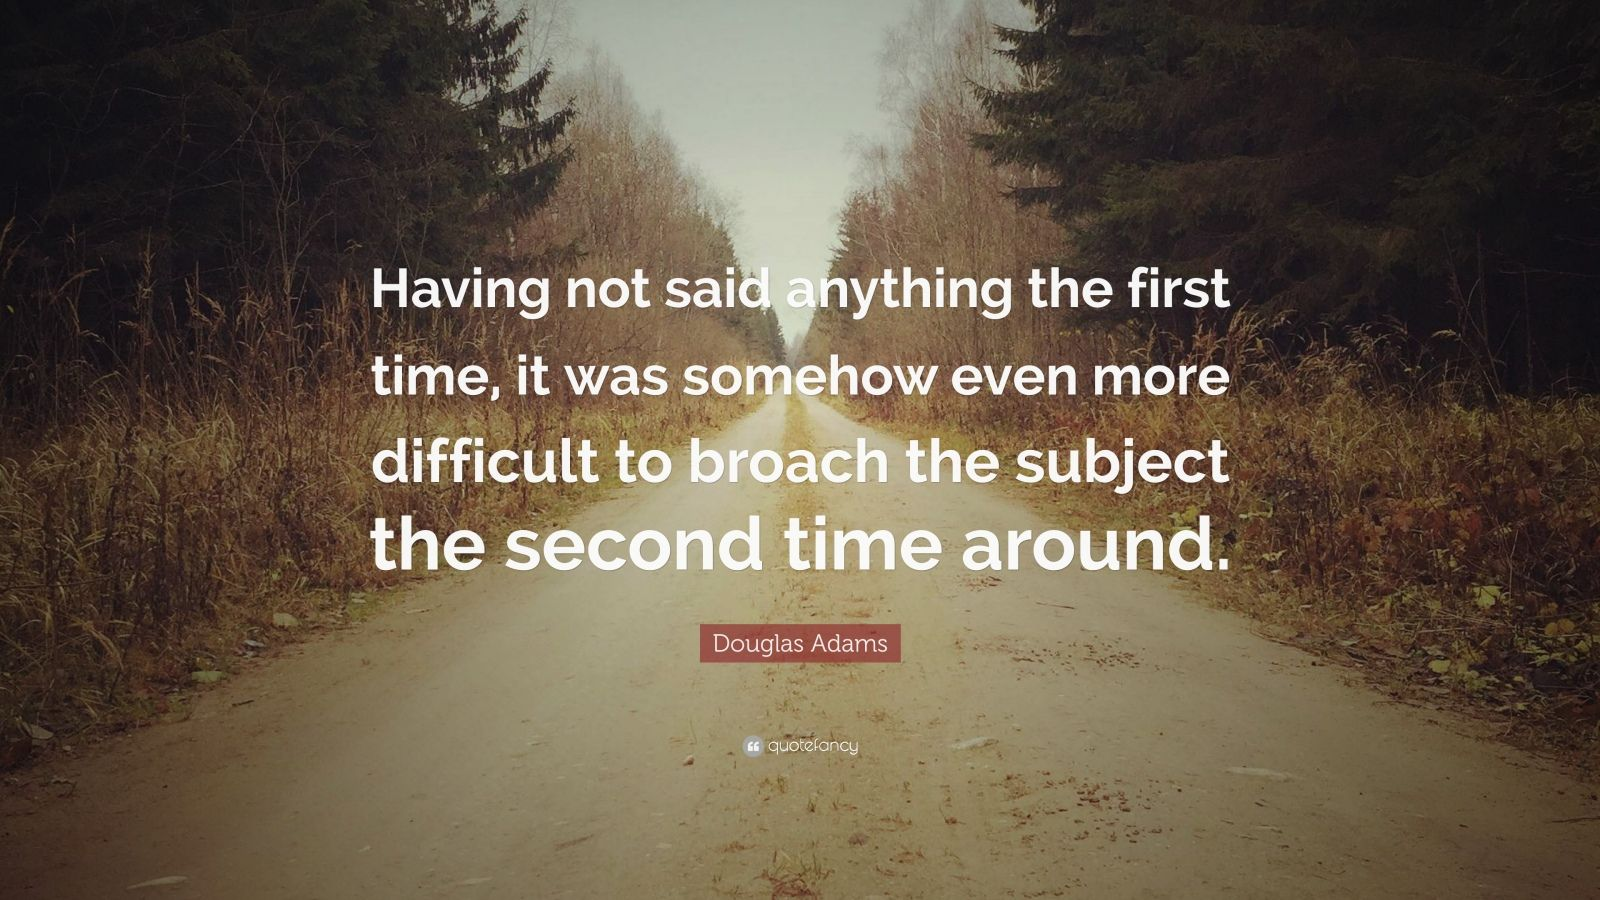 """Douglas Adams Quote: """"Having not said anything the first time, it was somehow even more difficult to broach the subject the second time around."""""""